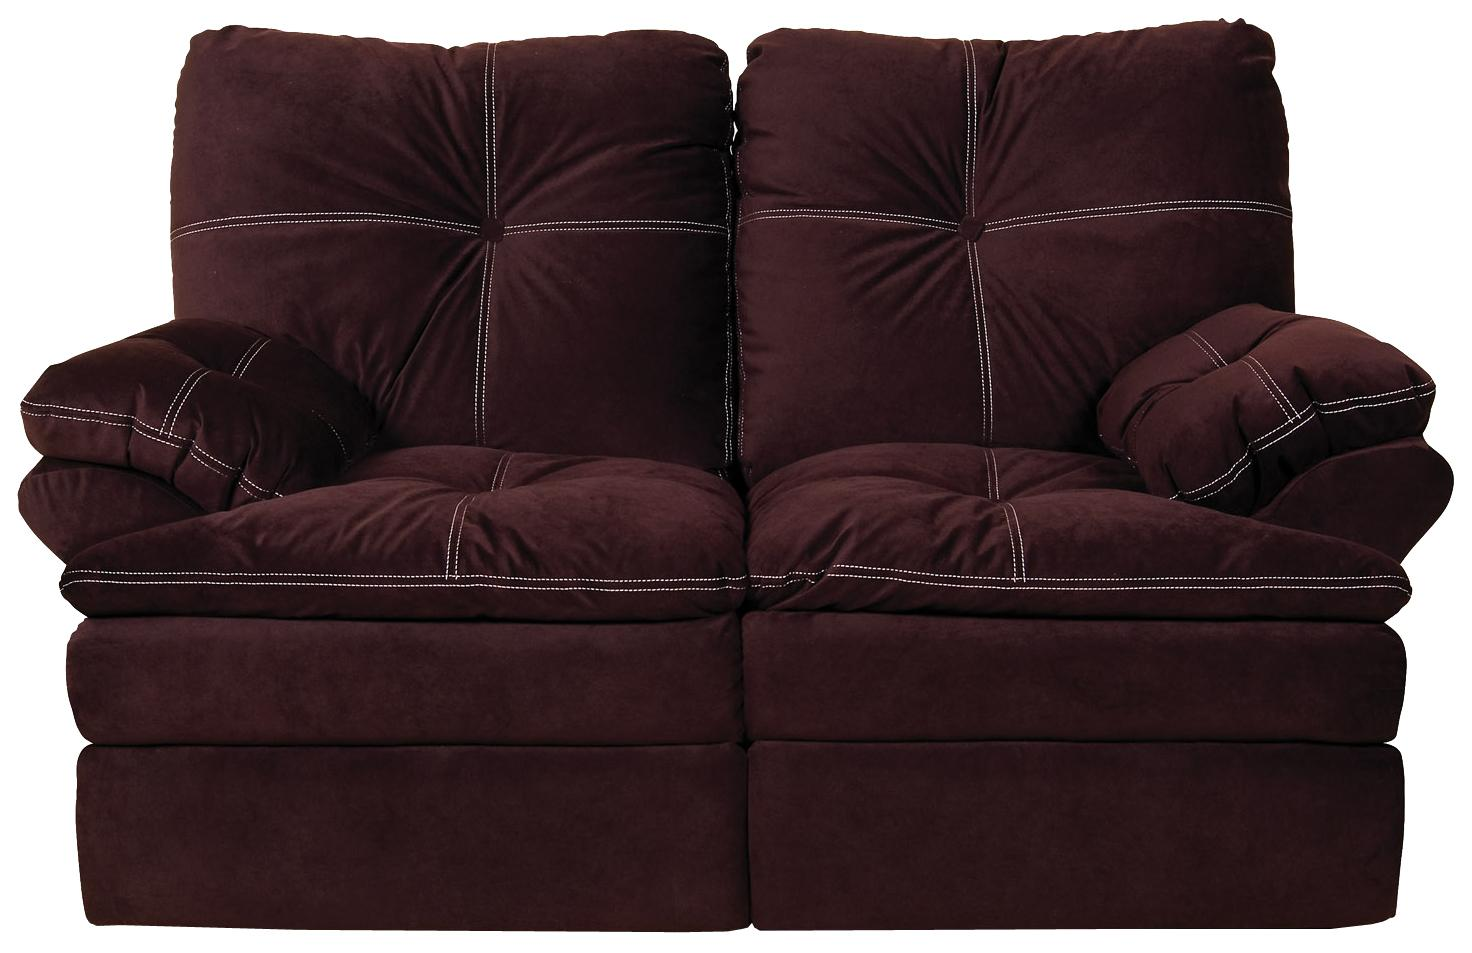 England Miranda and Lloyd  Double Reclining Loveseat - Item Number: 3013 F